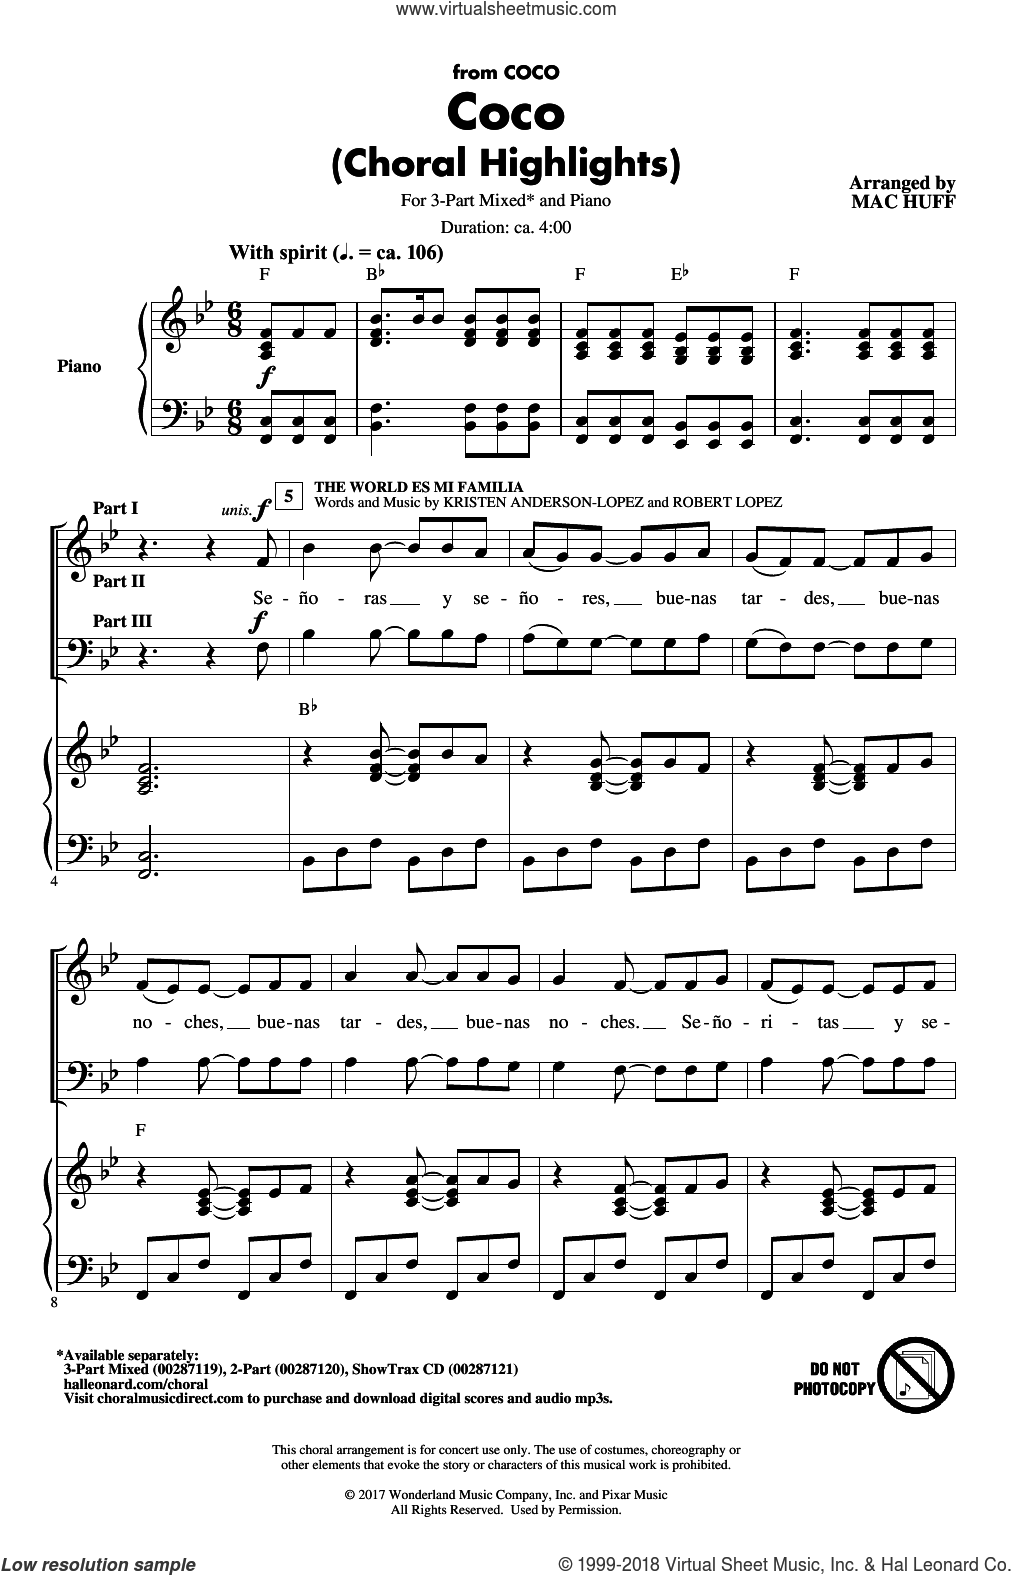 Coco (Choral Highlights) sheet music for choir (3-Part Mixed) by Germaine Franco, Mac Huff and Adrian Molina, intermediate skill level